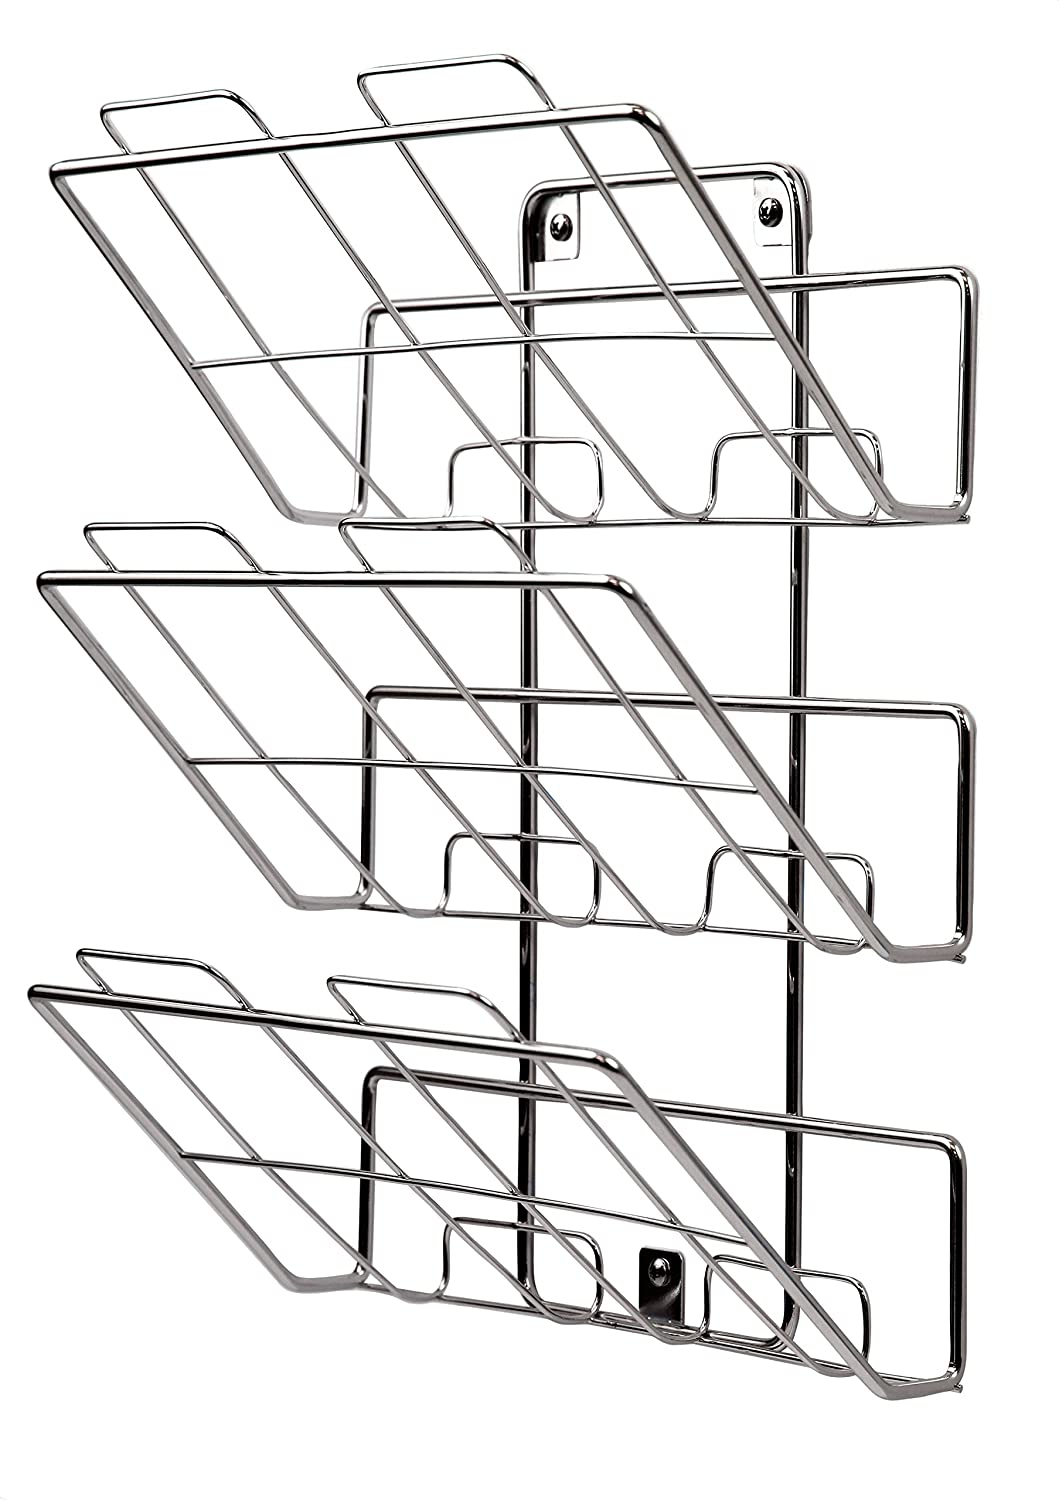 Spectrum Diversified 75870 Wall-Mount 3-Tier File Holder and Magazine Rack, Chrome